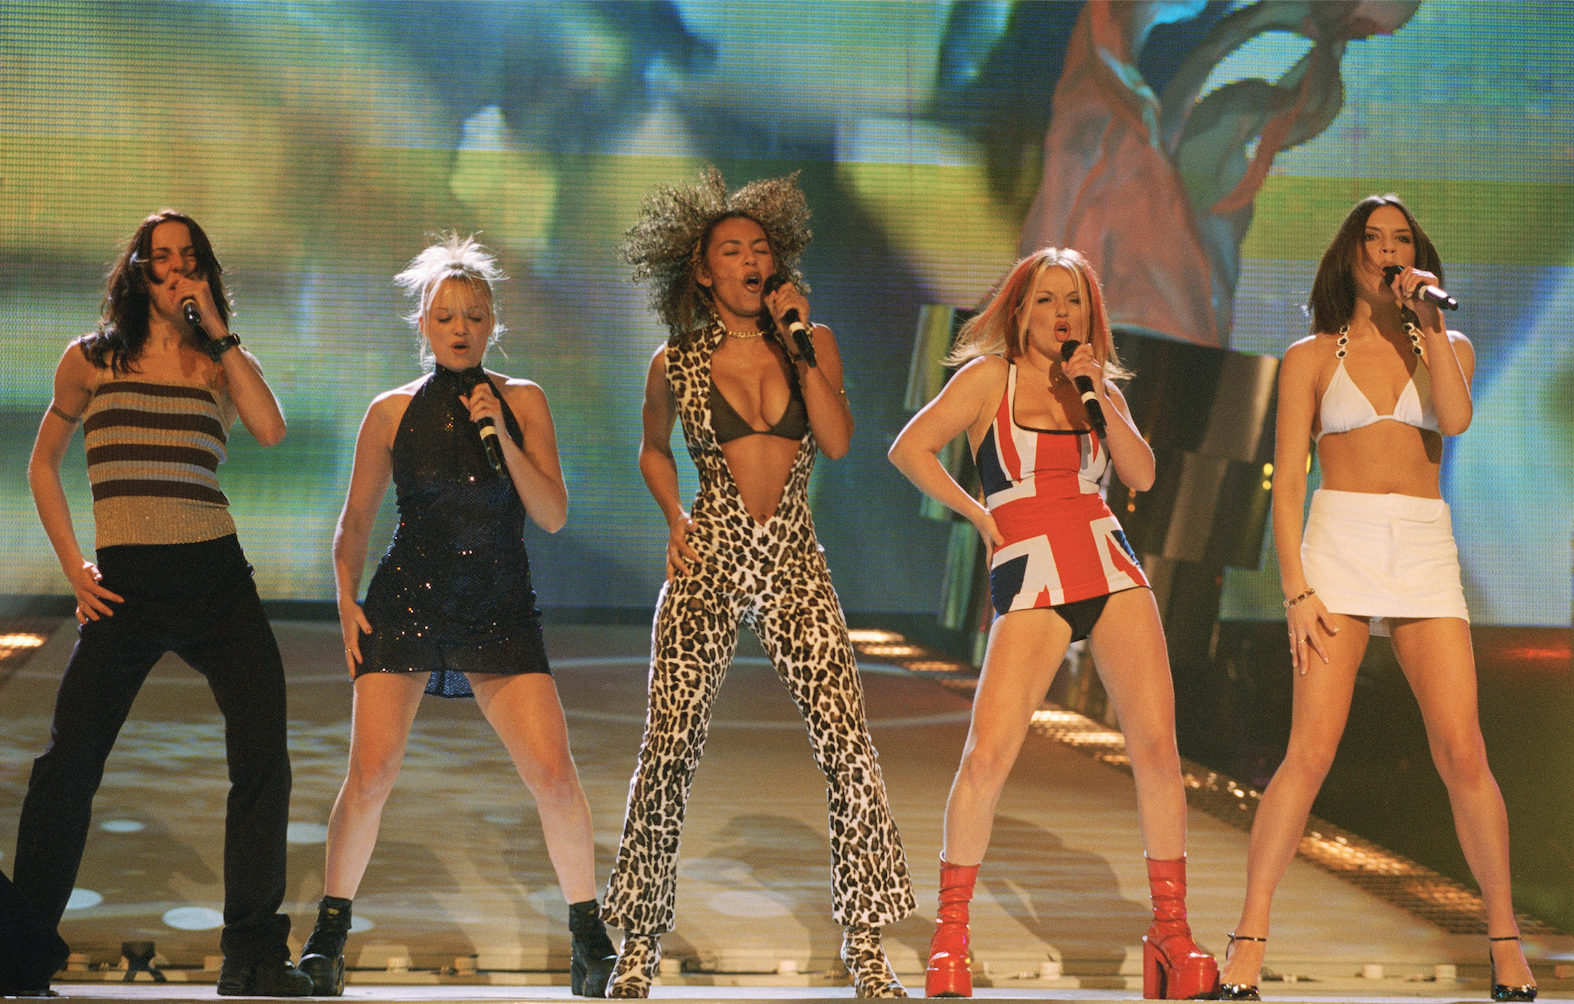 British all-girl singing group the Spice Girls at the Brit Awards, where they won in the Best Video and Best Single categories, 24th February 1997